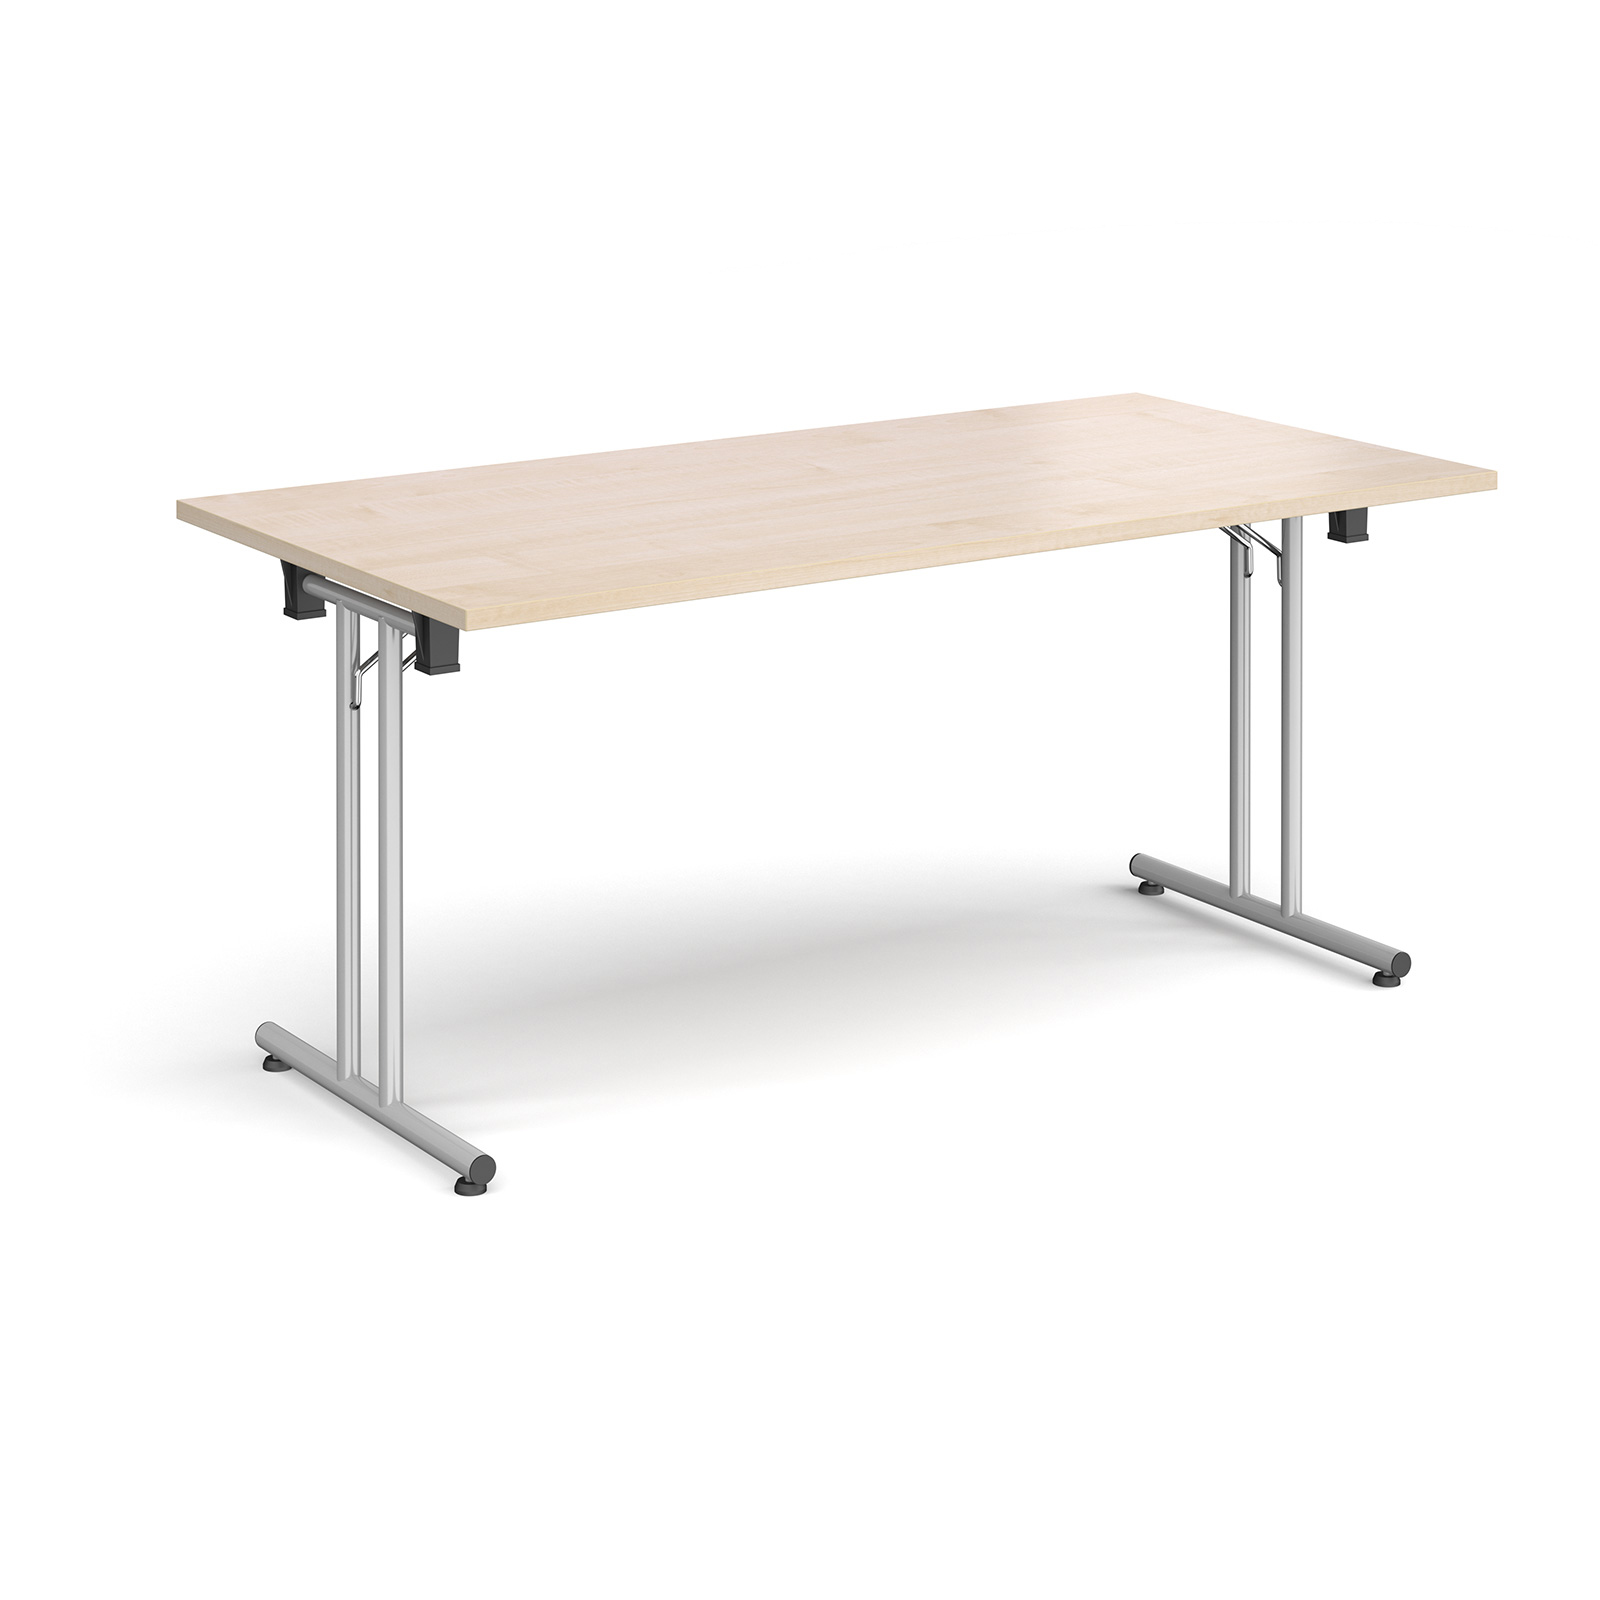 Rectangular Folding Leg Table With Silver And Straight Foot Rails 1600mm X 800mm Maple